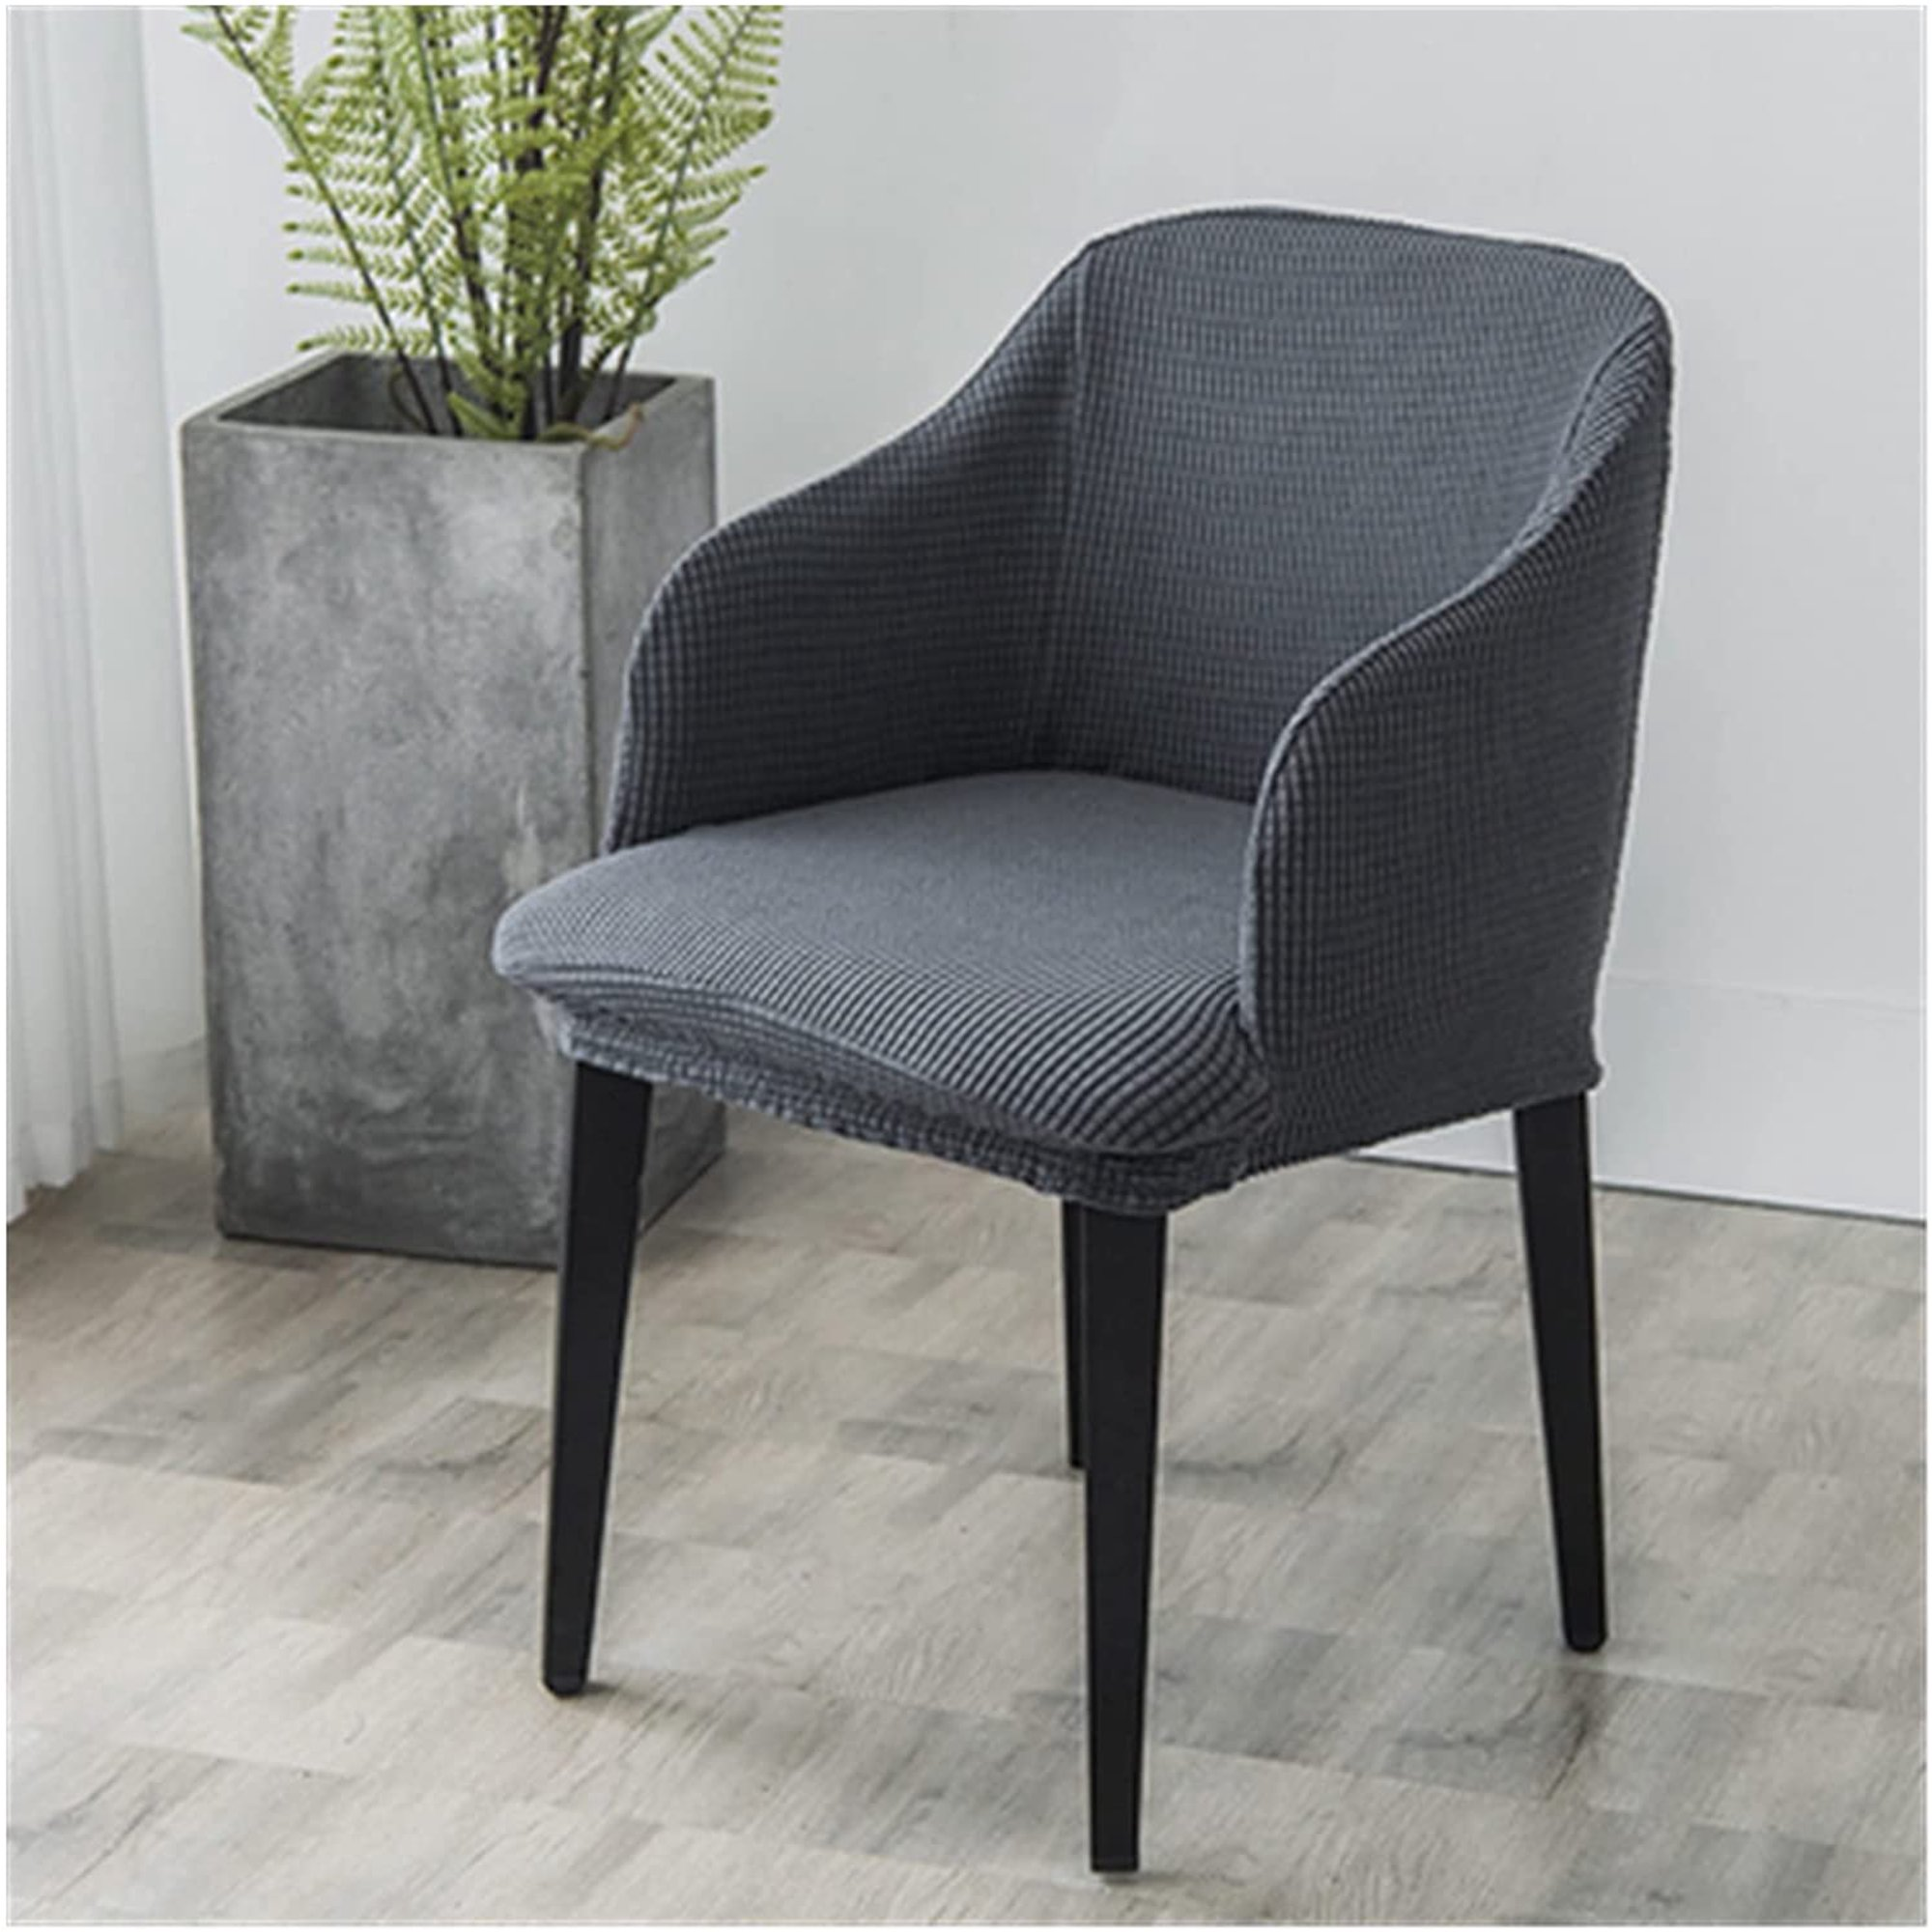 Stretchy Armrests Dining Chair Covers, Curved Back Dining Room Chair Covers